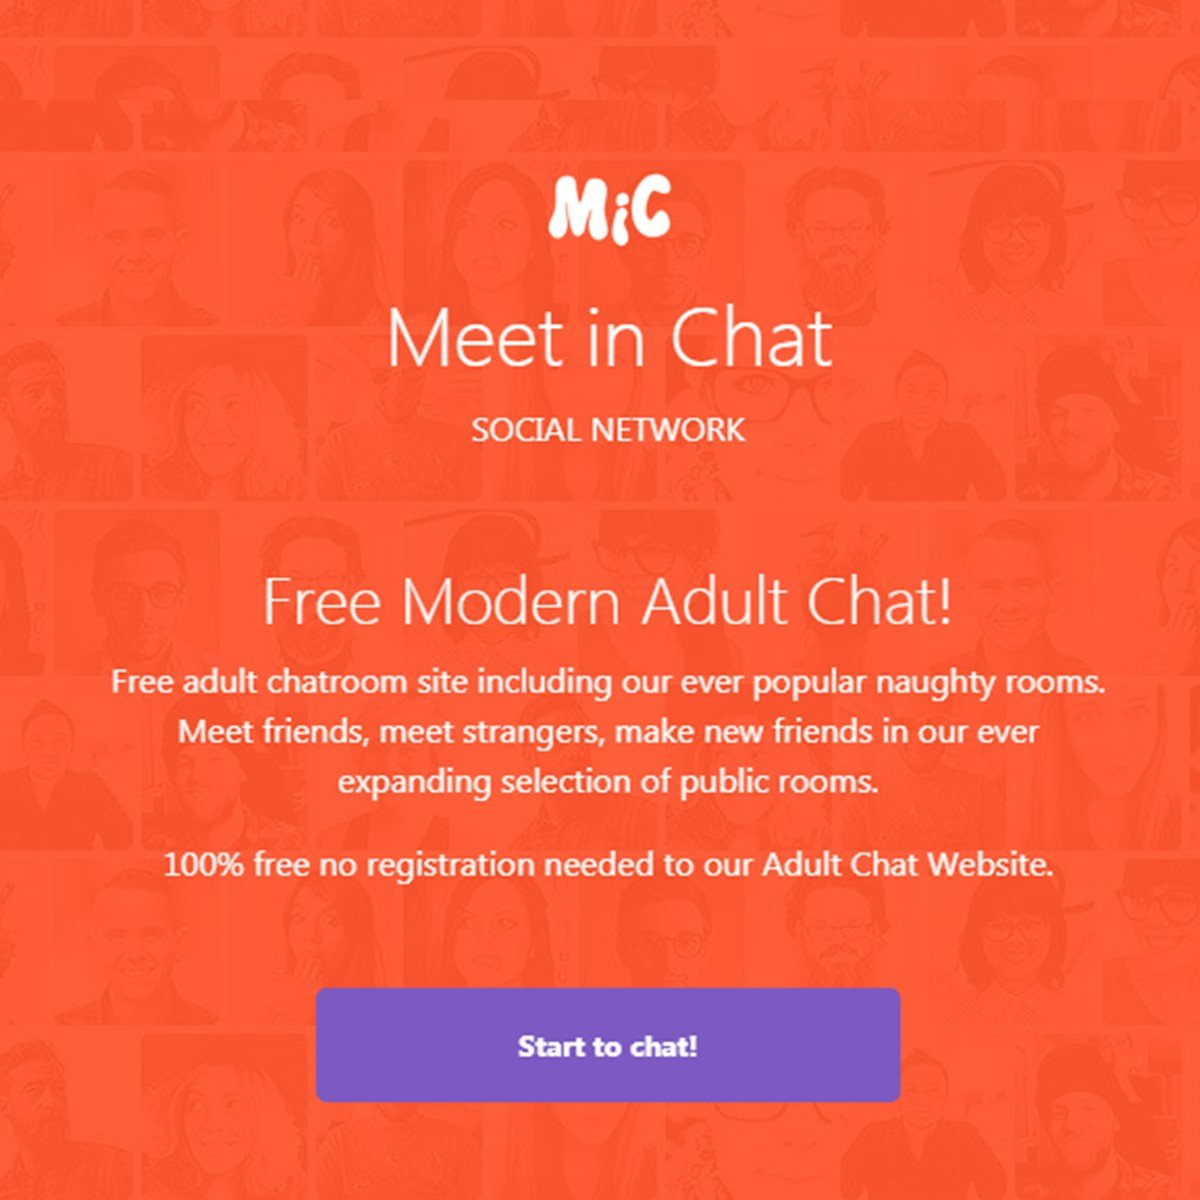 Meet in Chat Alternatives and Similar Websites and Apps